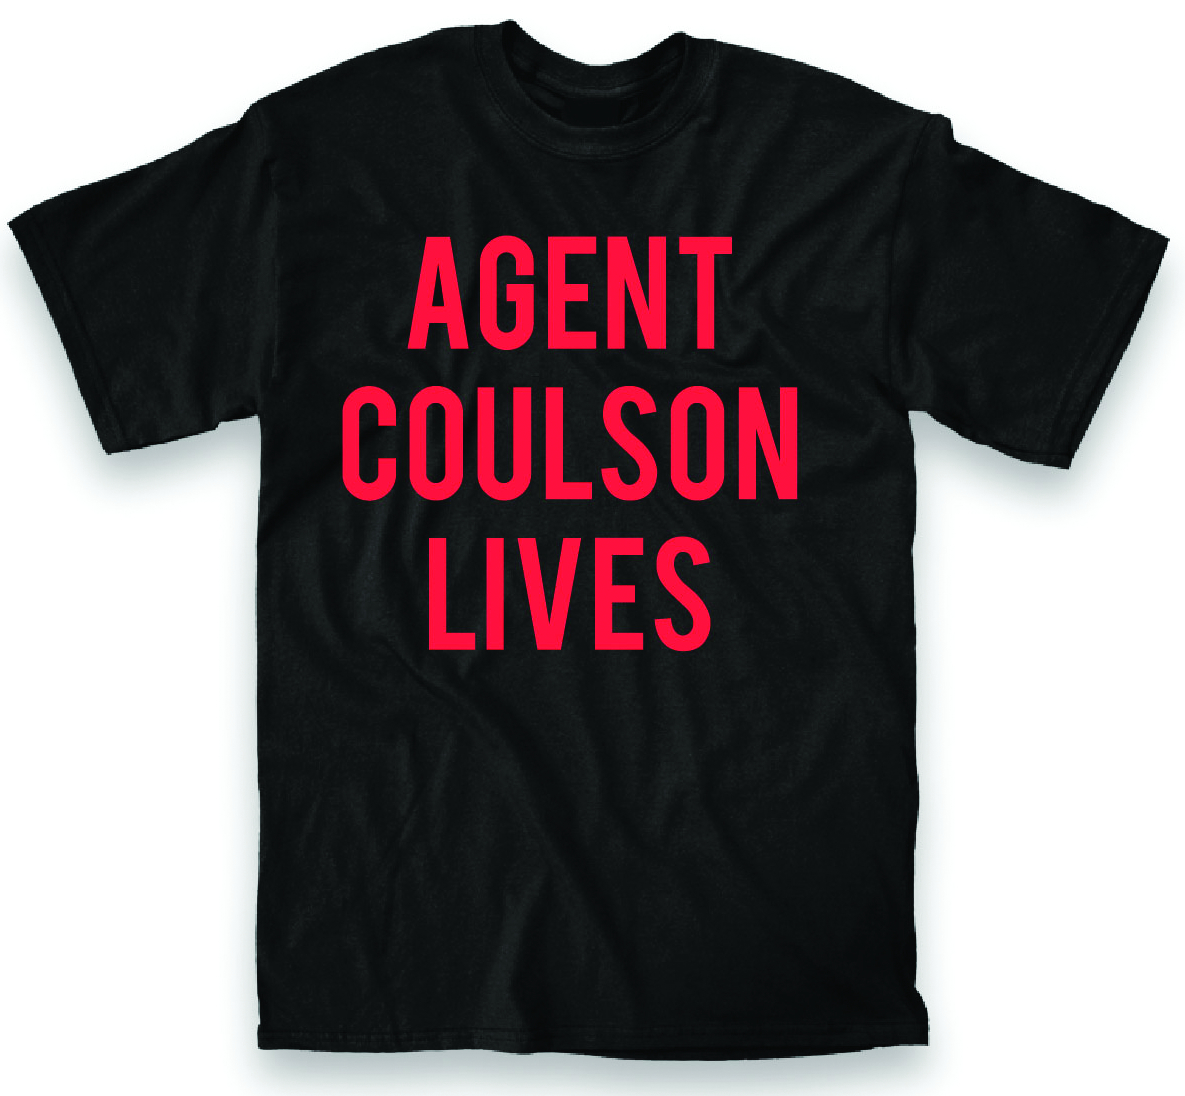 SHIELD COULSON LIVES BLK T/S MED